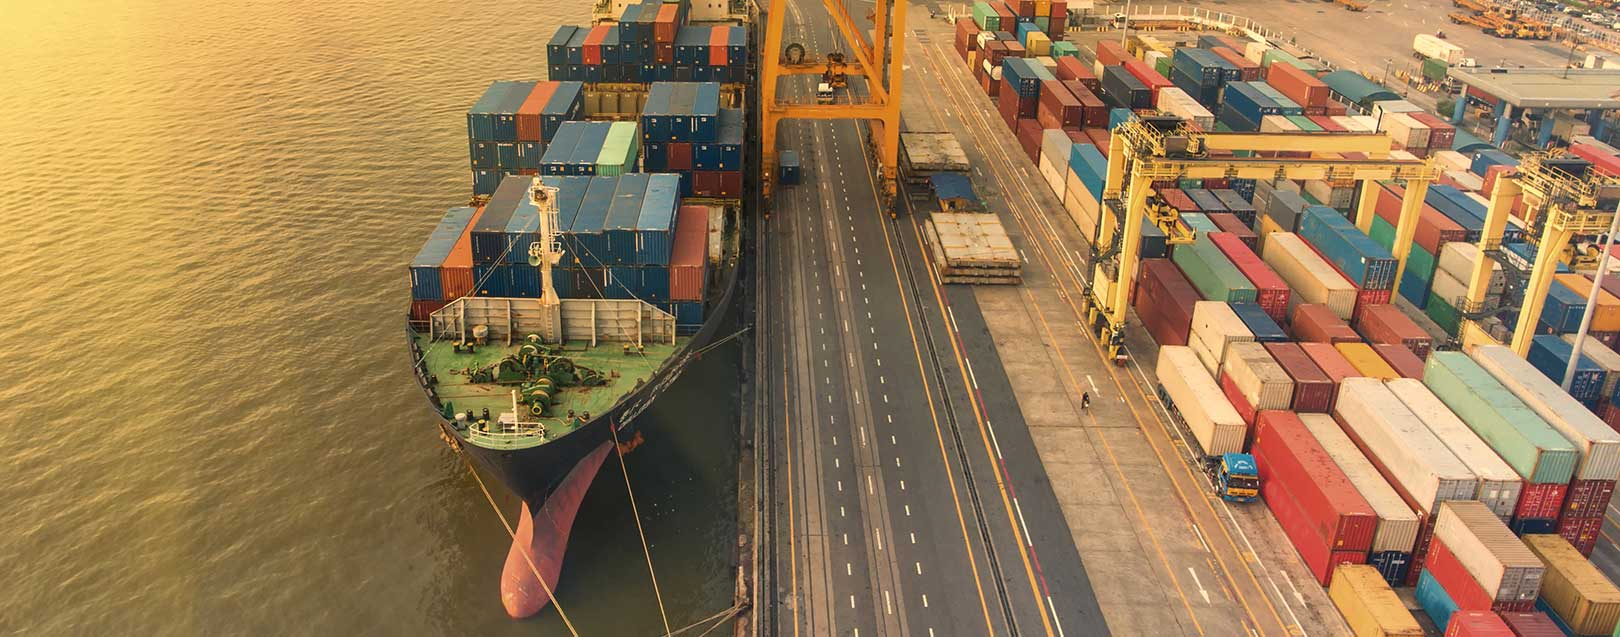 Major Indian ports show 6.8% growth in cargo handled during 2016-17